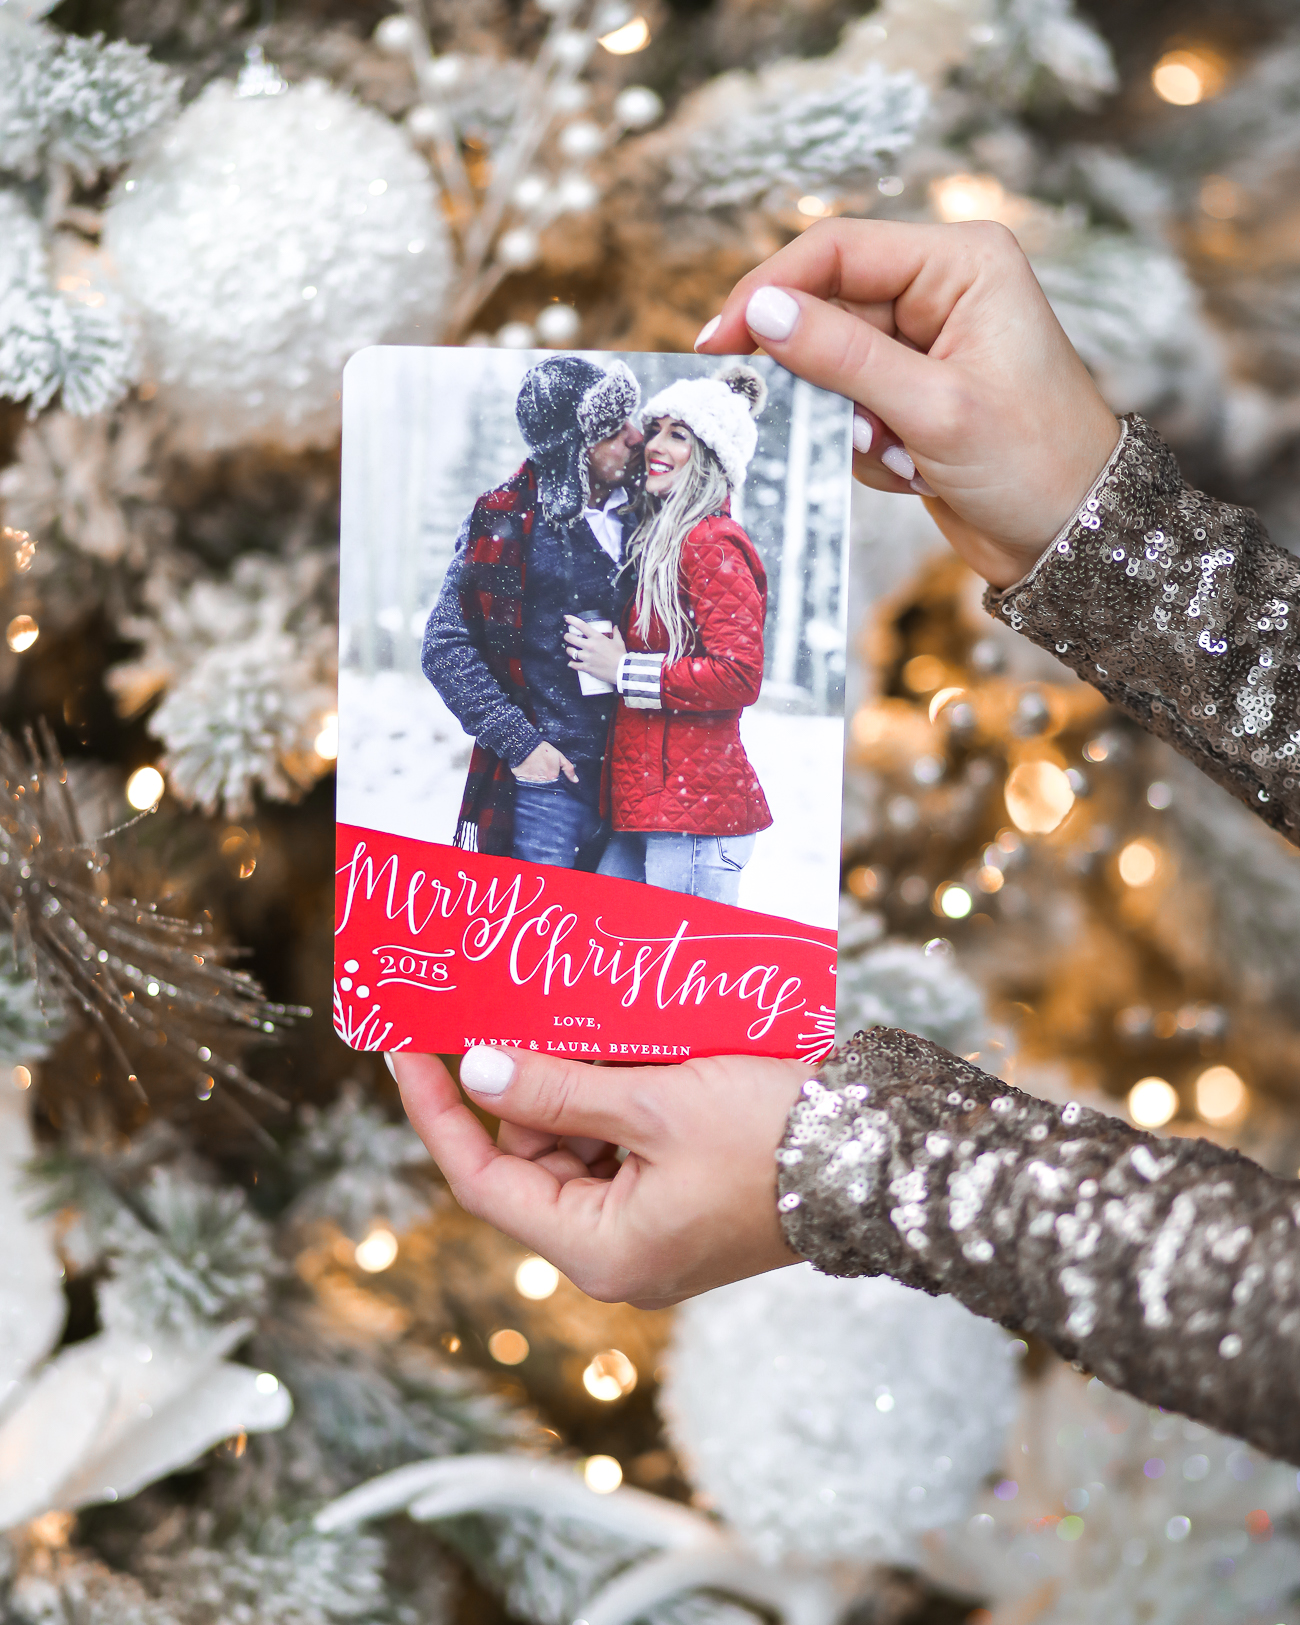 Walmart Holiday Christmas Card 2018 Laura Beverlin-3